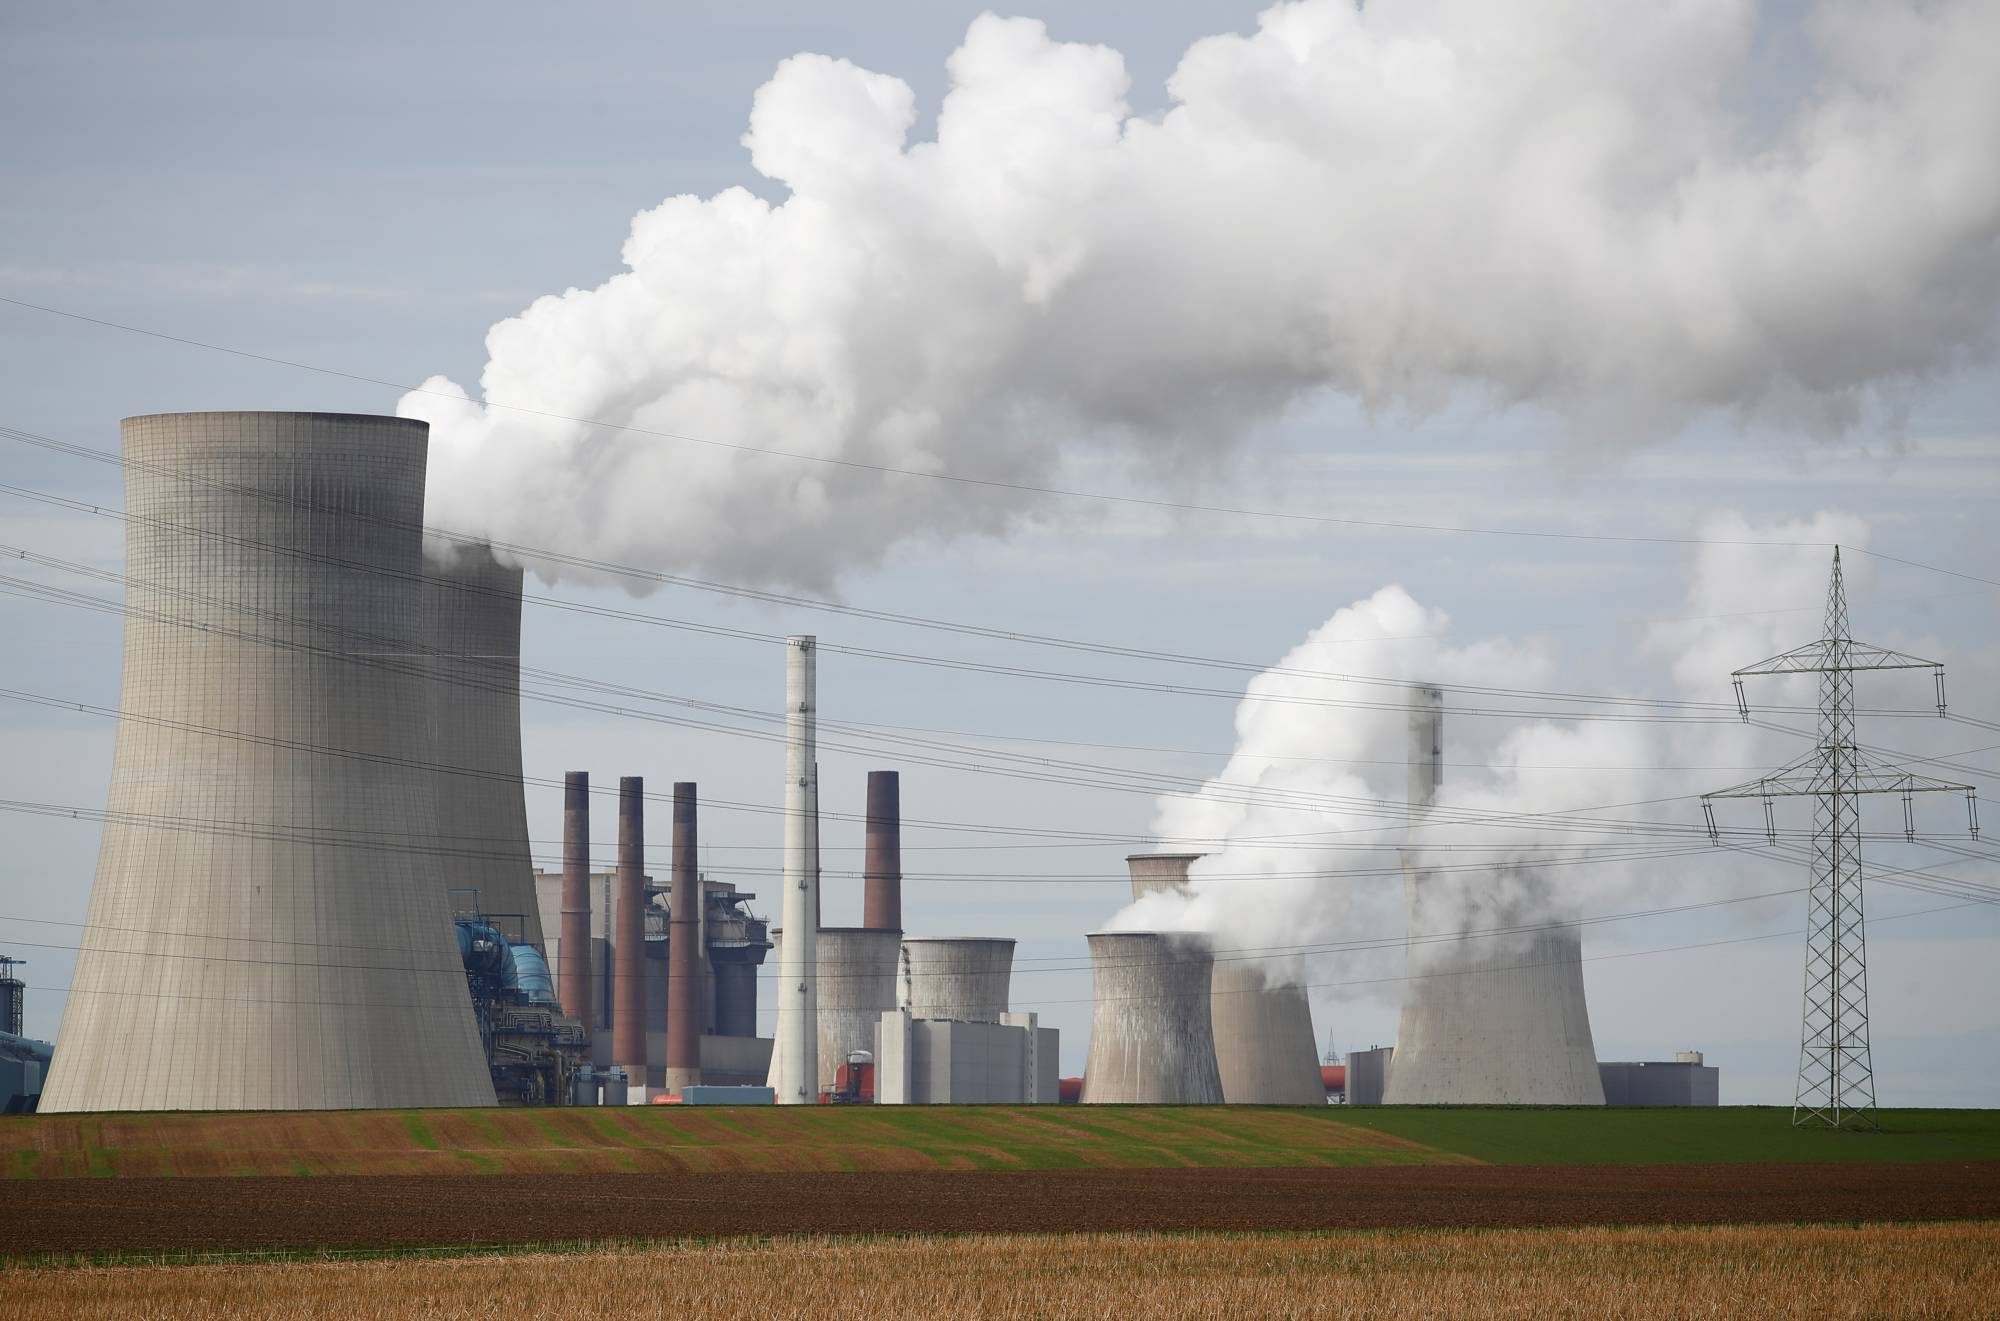 Steam rises from the five brown coal-fired power units of RWE, one of Europe's biggest electricity companies in Neurath, Germany, in March 2019. | REUTERS